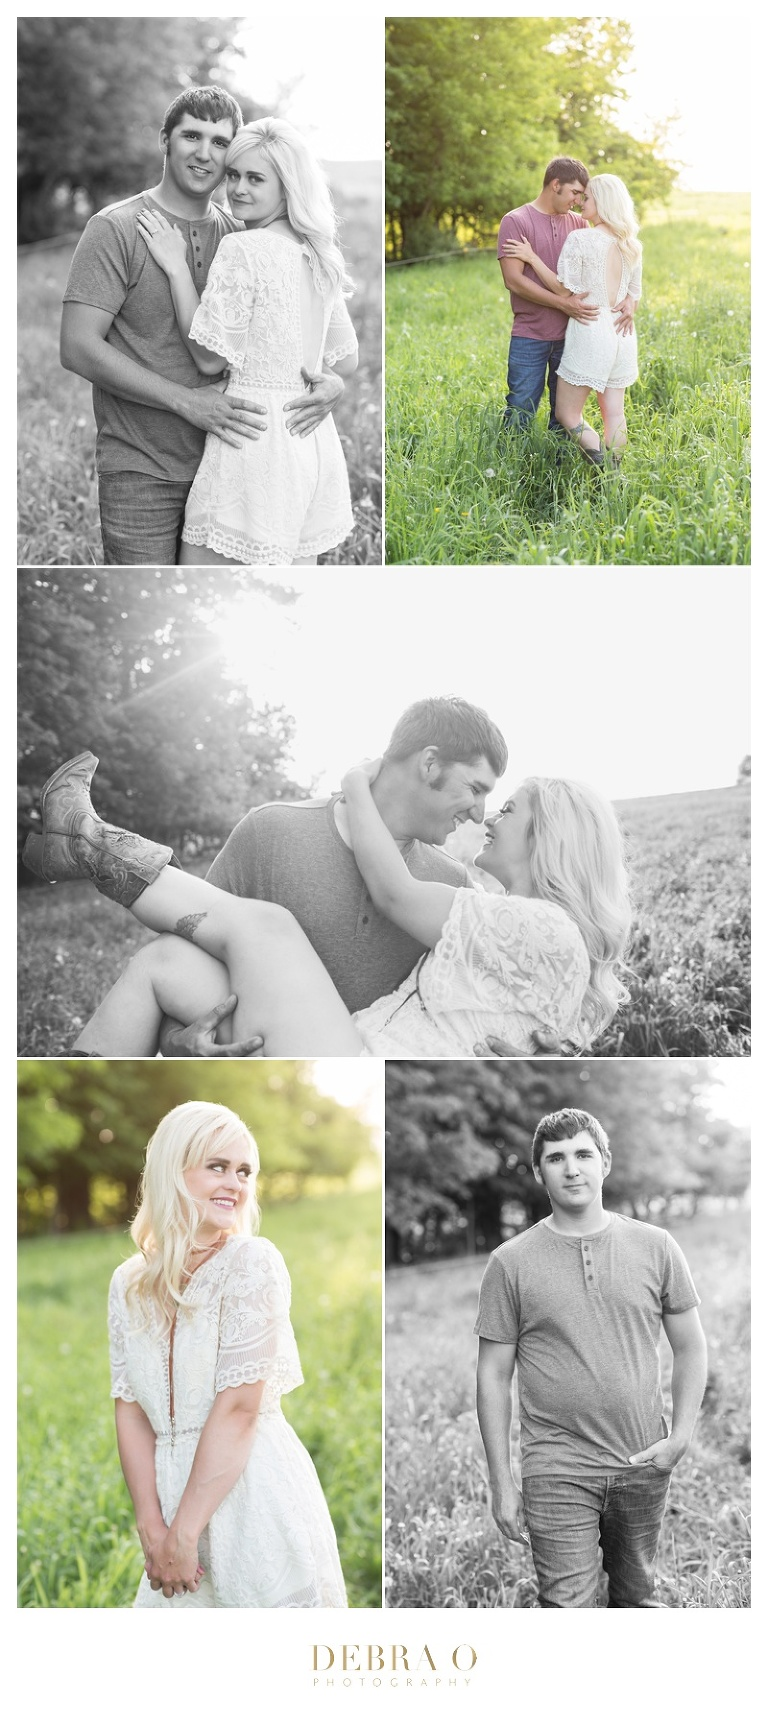 Debra O Photography, Farm engagement session, sunset engagement session, Hudson portrait photographer, Hudson wedding photographer